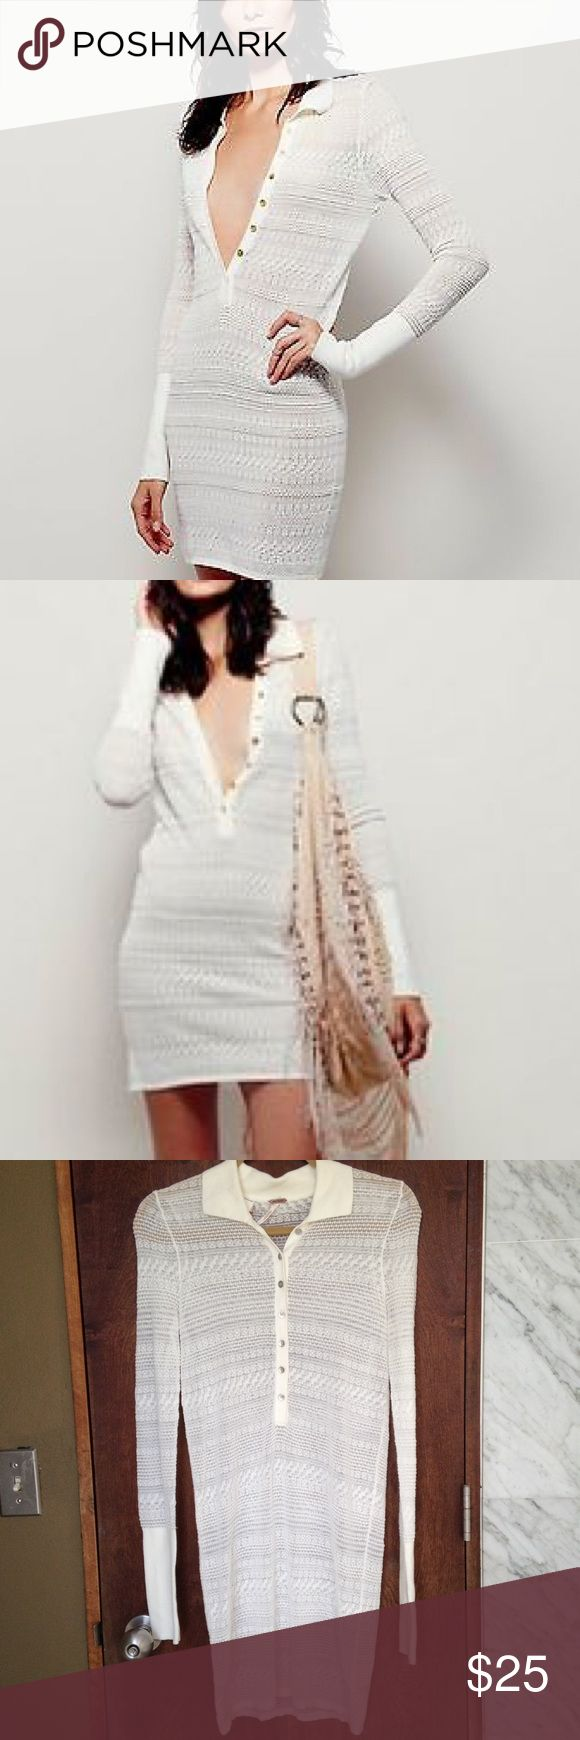 LAST CHANCE!! Free People Long Sleeve White Dress Great condition. Has a silver metallic sheen. It is a body-con dress. Has silver color buttons. Buy before it sell this week. FAST SHIPPING!!! Free People Dresses Long Sleeve